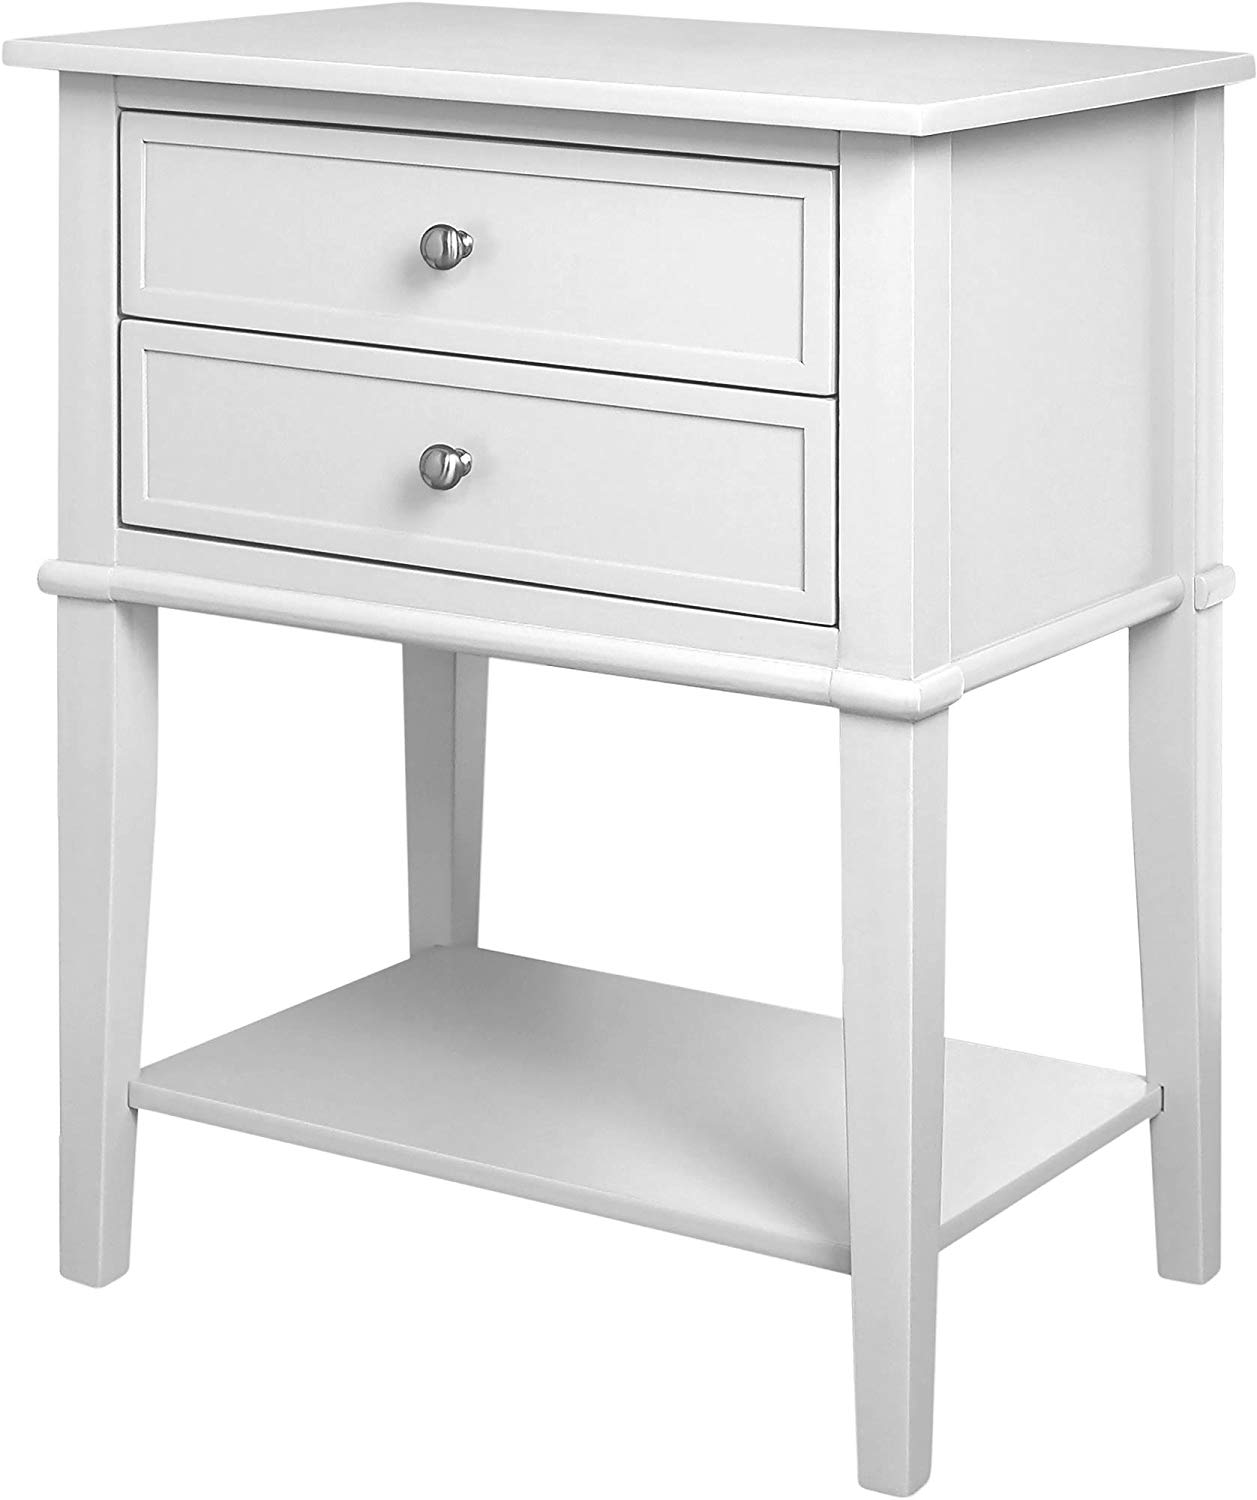 ameriwood home franklin accent table with drawers white kitchen dining patriotic runner target copper furniture round drum end hairpin leg half wall black side storage bedroom